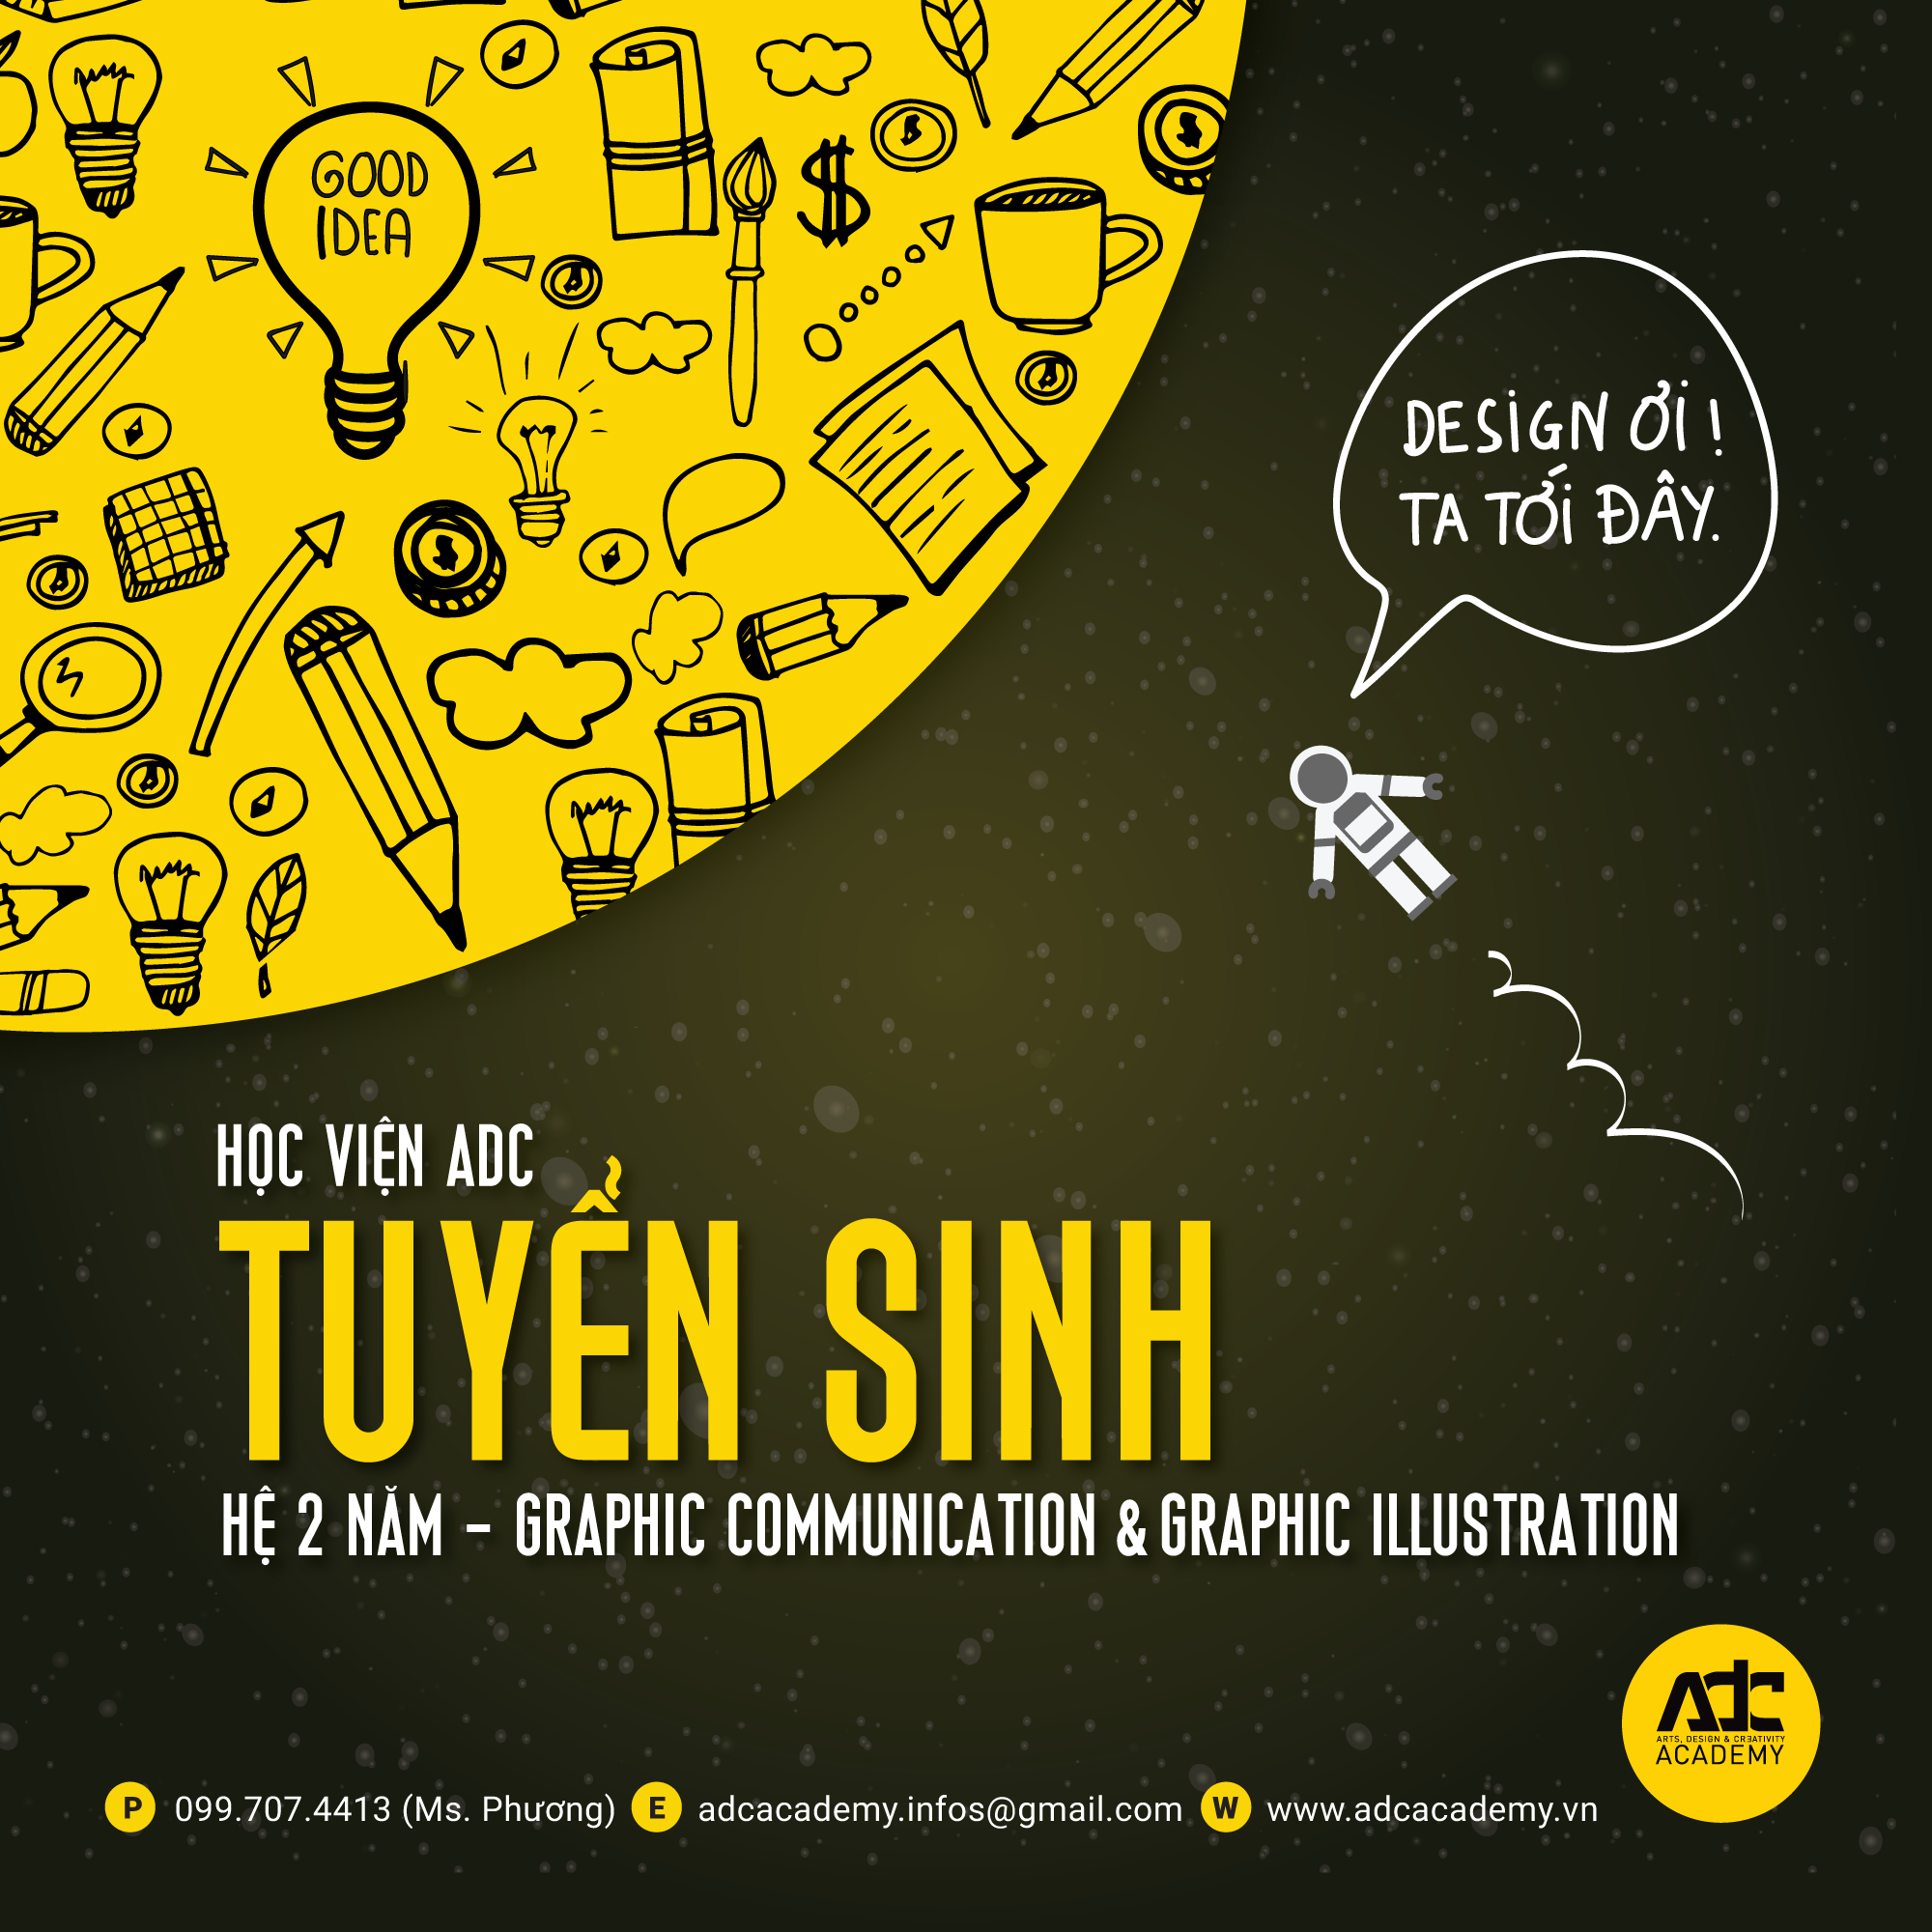 ADC_TUYENSINH2016_POSTERFB